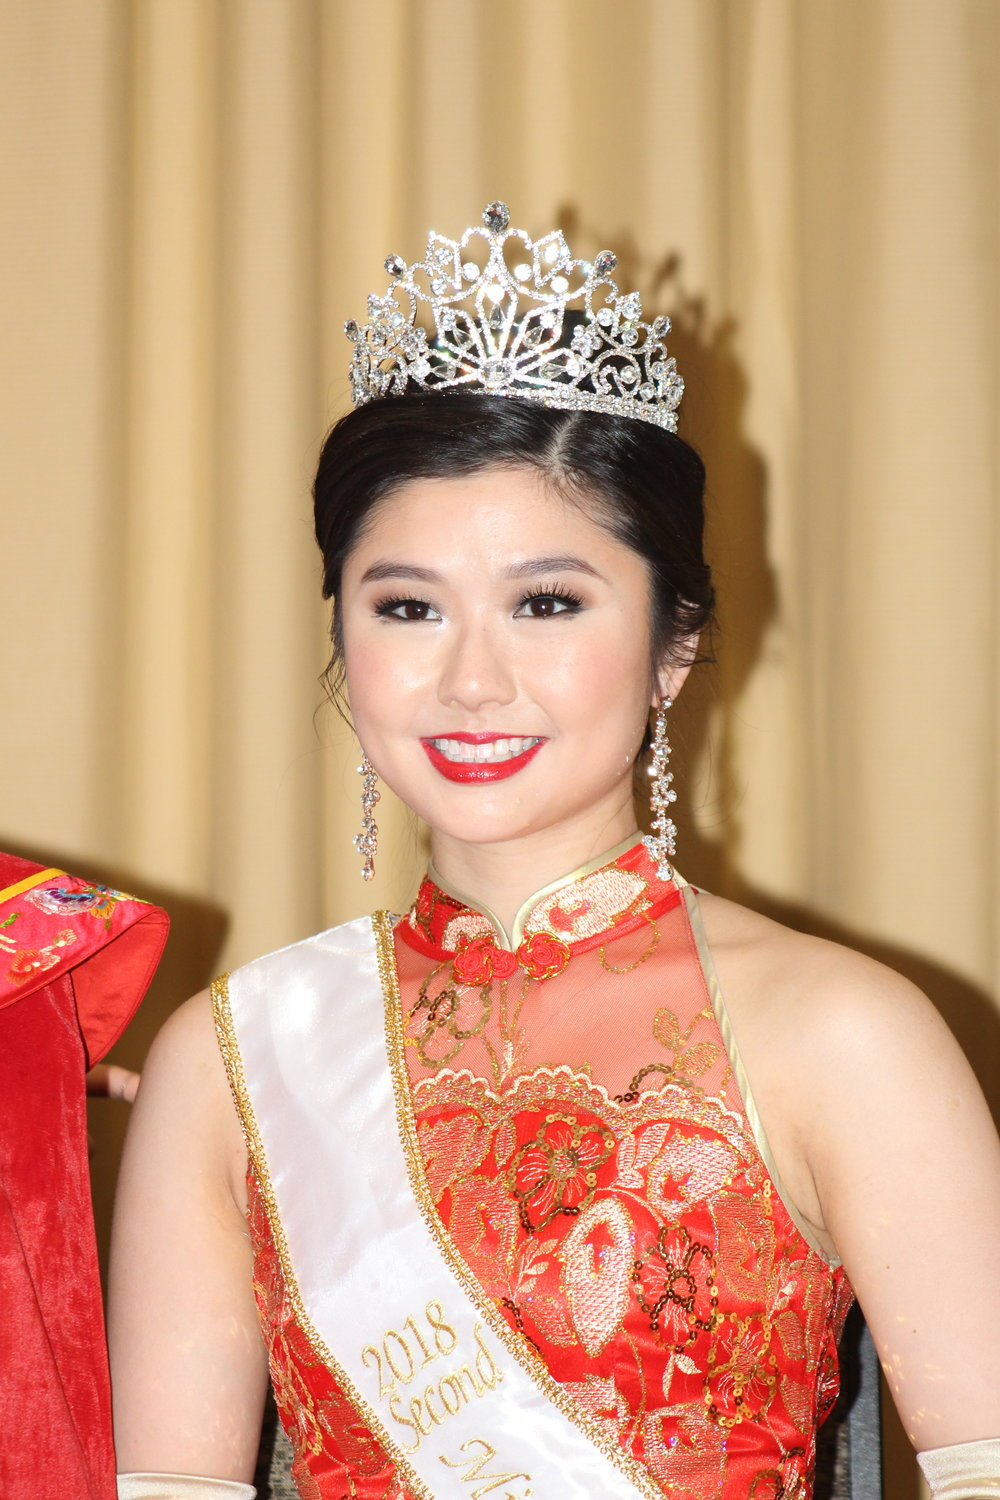 Second Princess, Jasmine Lam